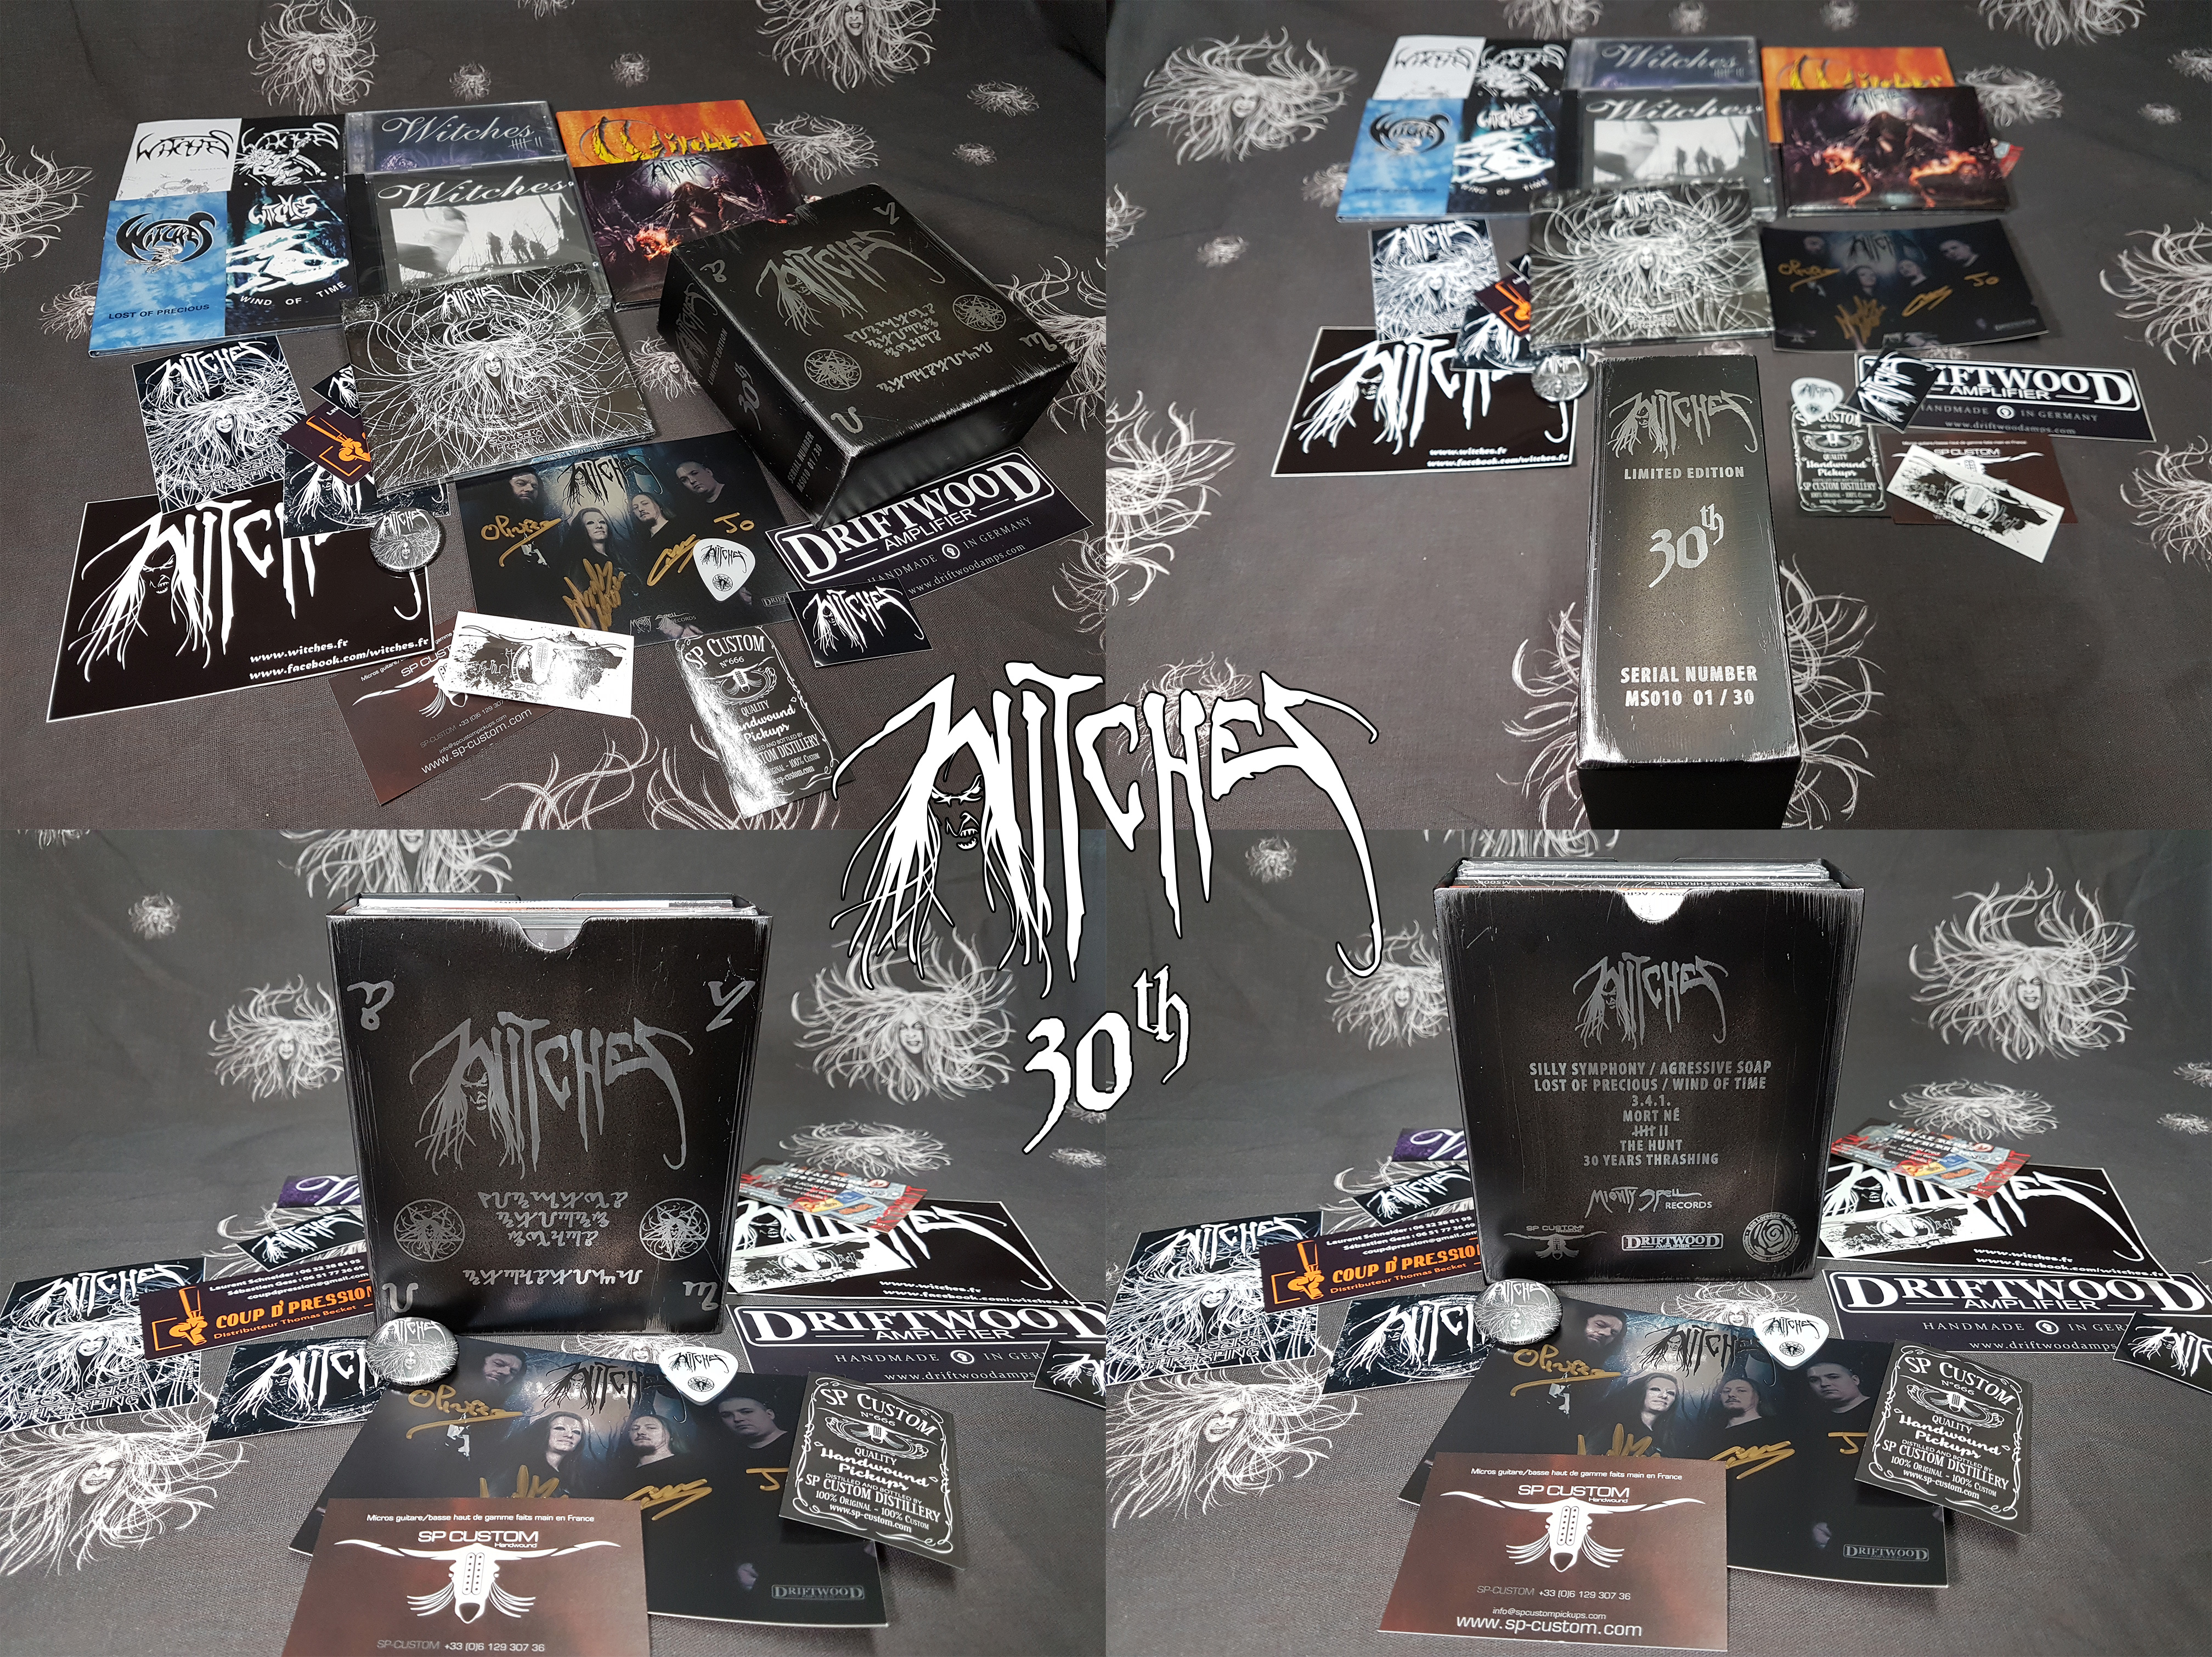 Witches 30th Anniversary Thrash Metal Box